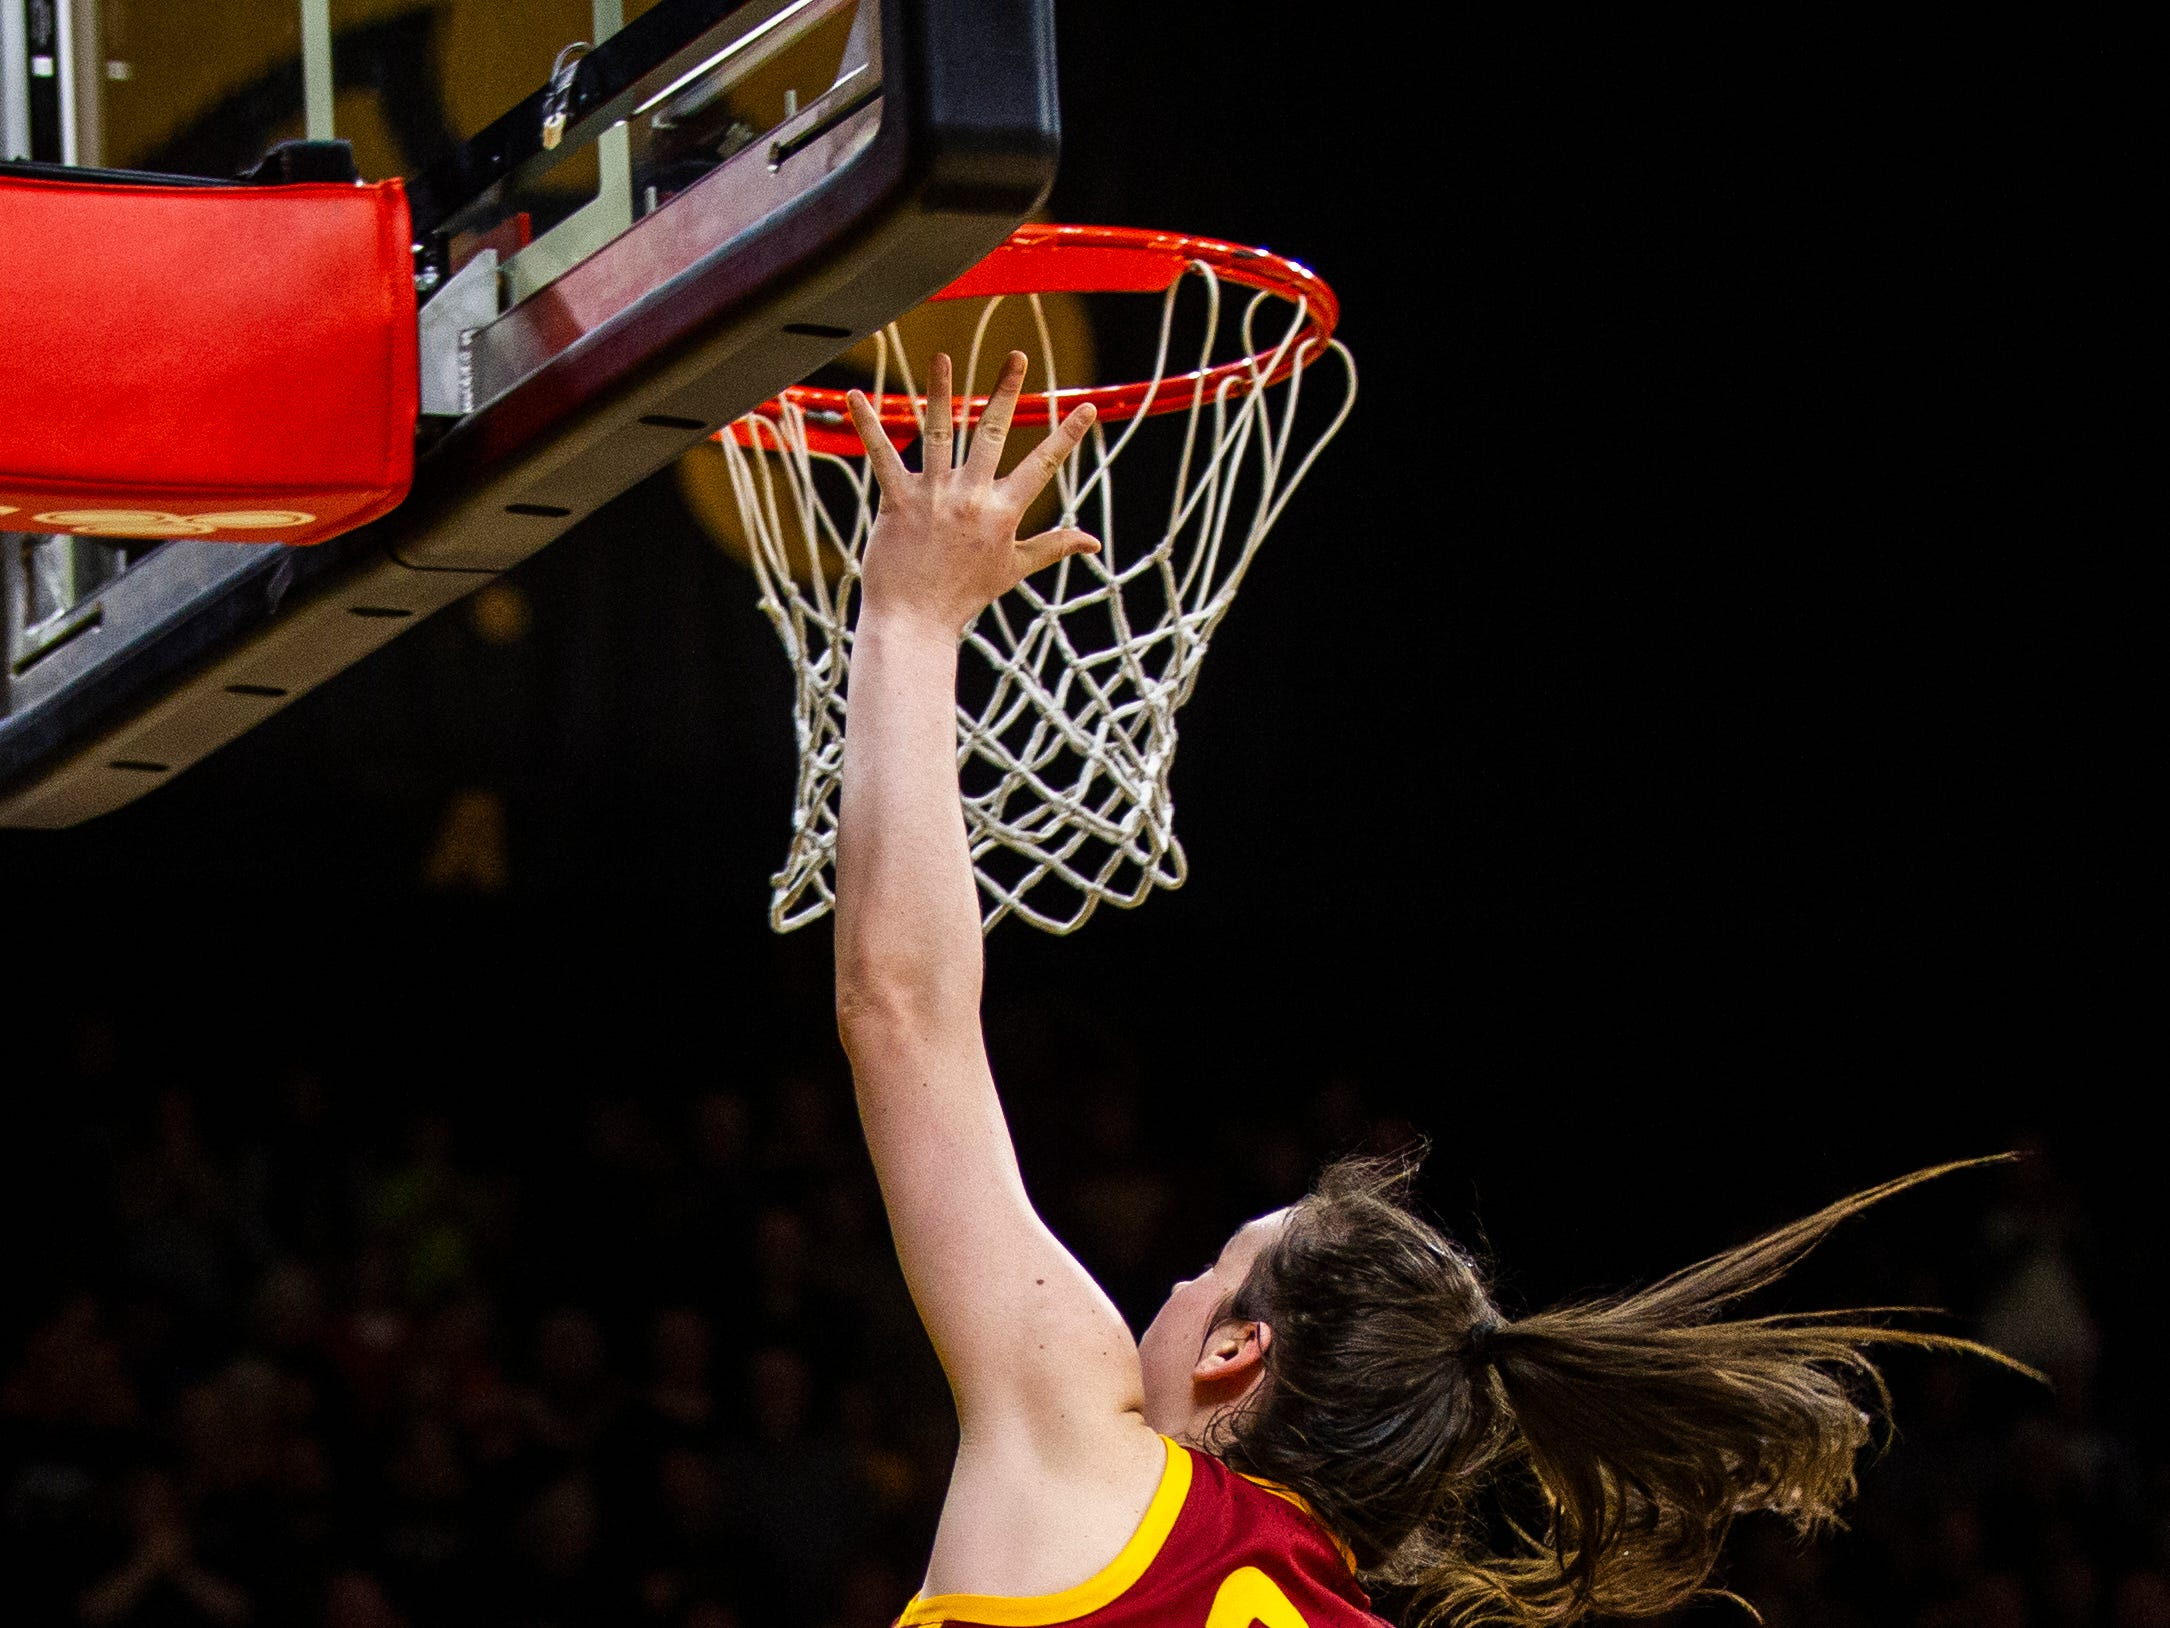 Iowa State guard Bridget Carleton (21) makes a basket during a Cy-Hawk series NCAA women's basketball game on Wednesday, Dec. 5, 2018, at Carver-Hawkeye Arena in Iowa City.